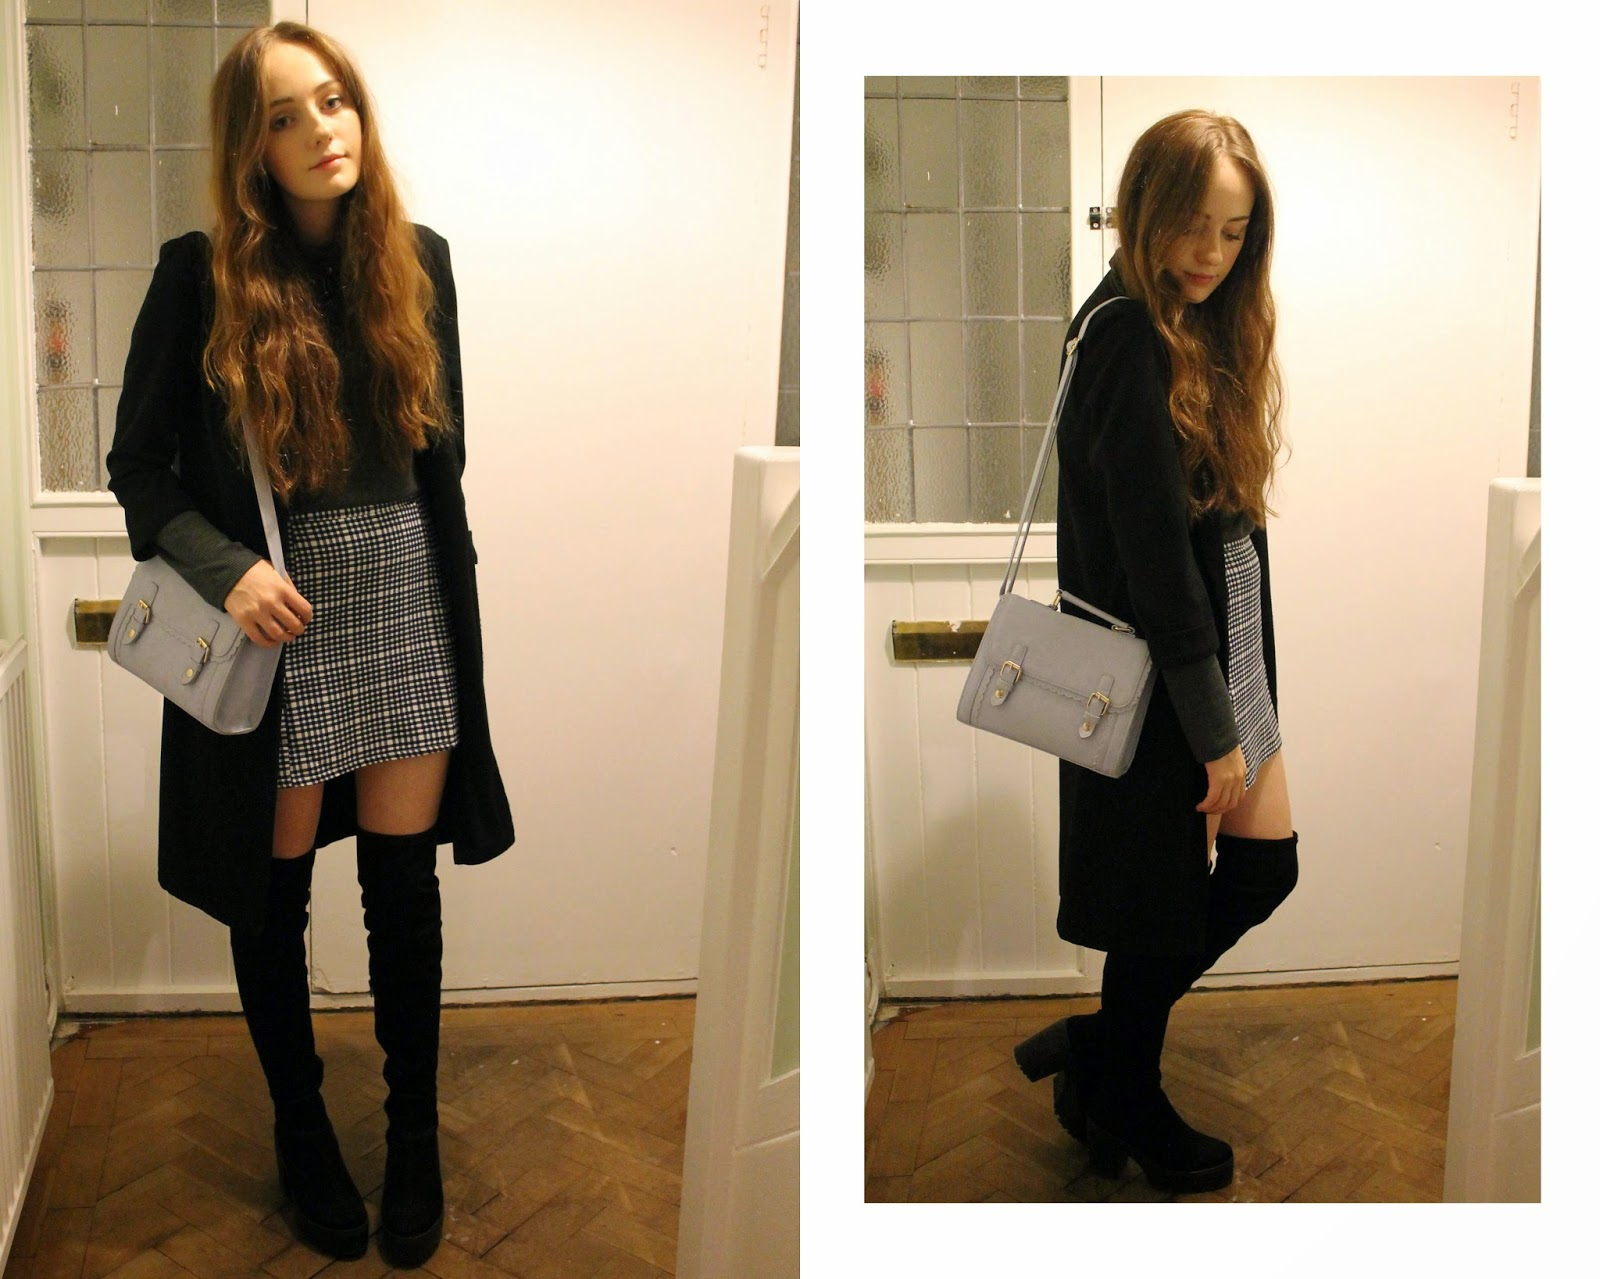 OOTD featuring glamorous black and white checked monochrome skirt from bank fashion worn with a black duster coat from primark